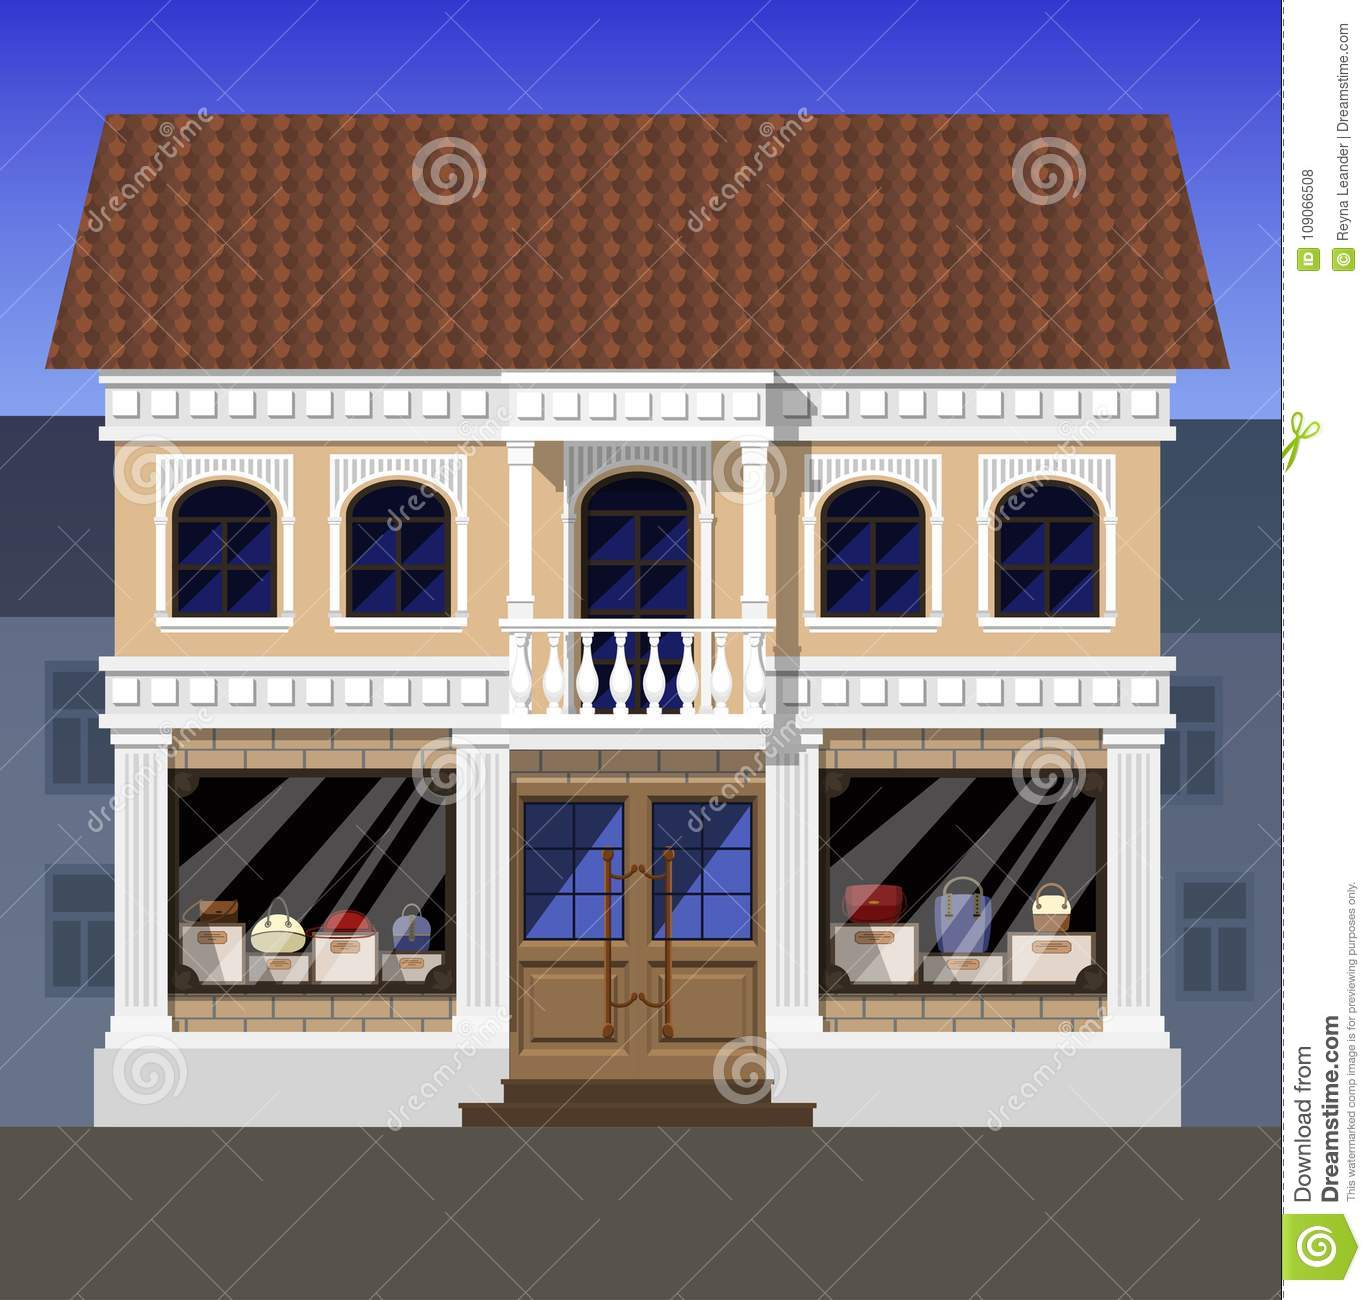 16d5d5c38f The shop of luxury bags, located on the first floor of an old house in a  classical style, in the historical part of the city. On the second floor  there is ...